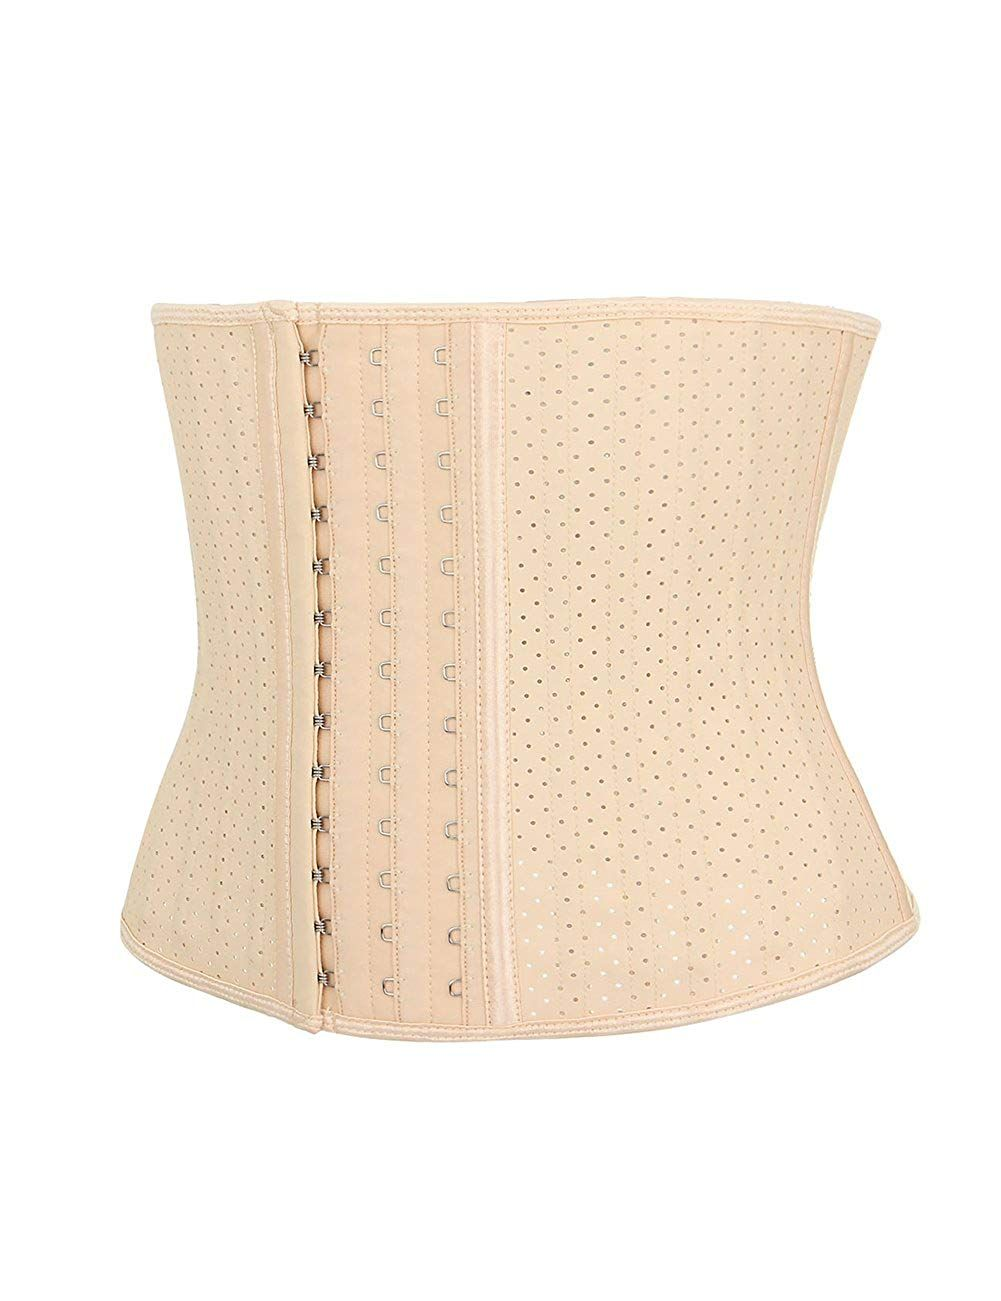 710d465160a Lover-Beauty Women s Latex Short Torso Waist Trainer Corset Training Shaper  at Amazon Women s Clothing store